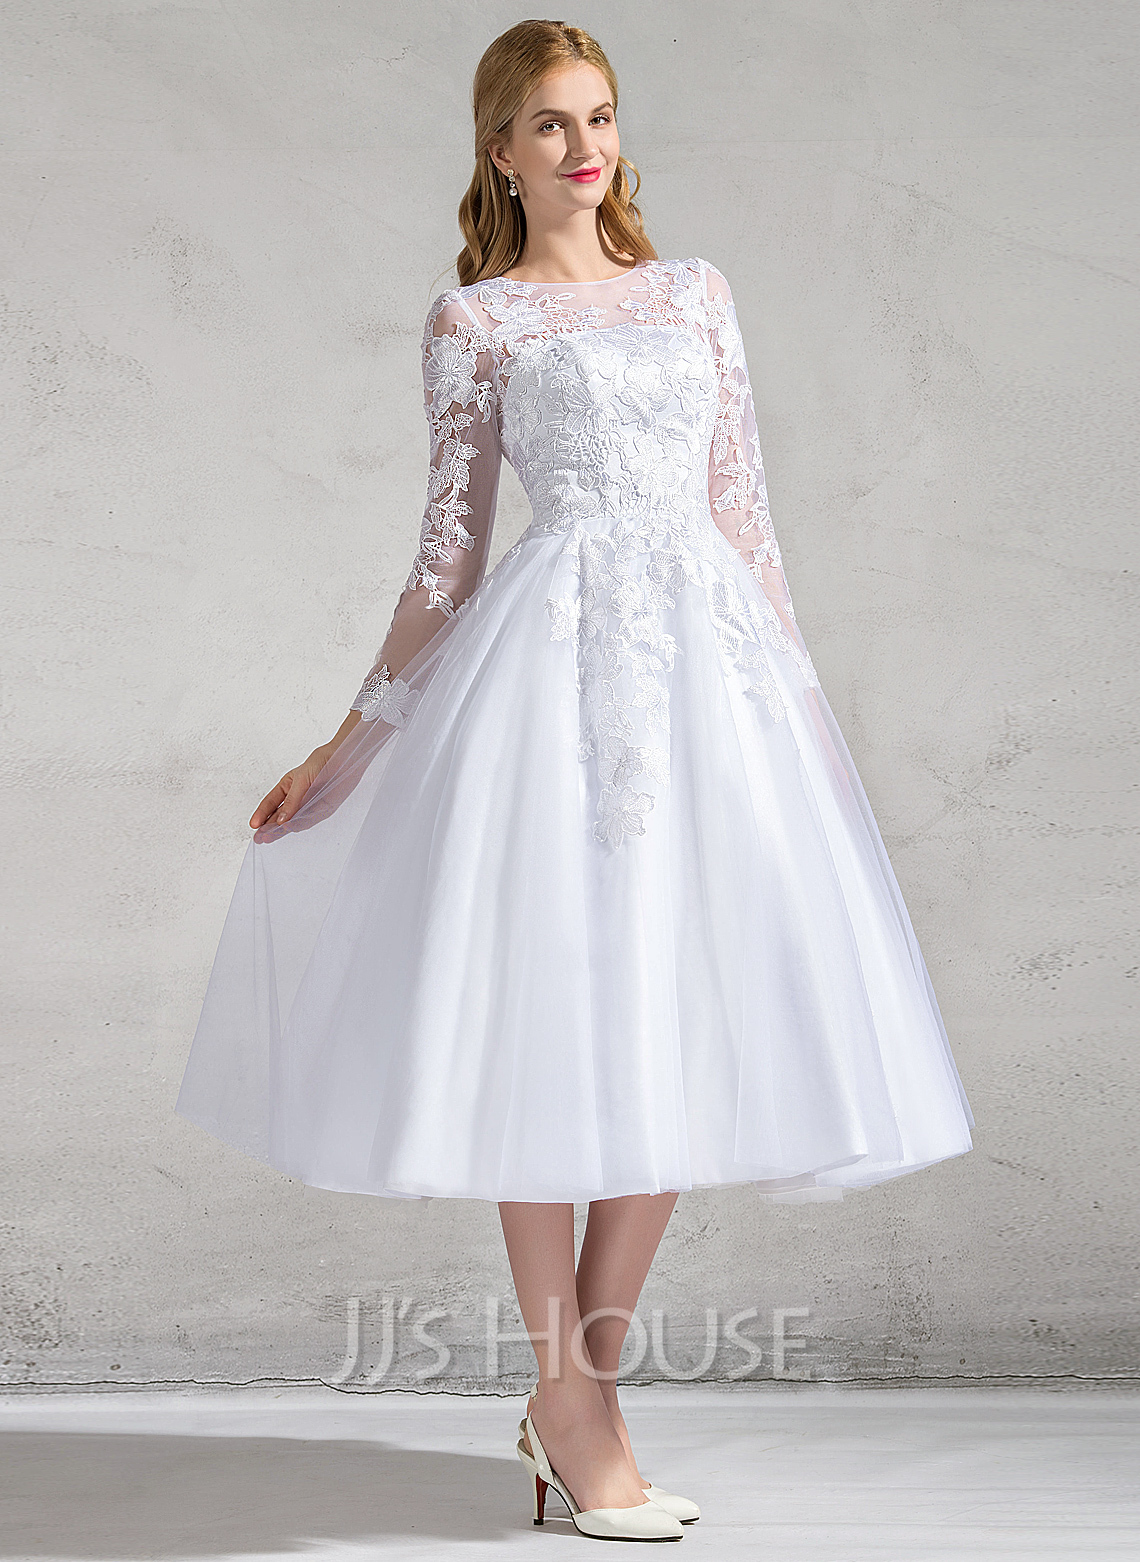 A Line Princess Scoop Neck Tea Length Tulle Lace Wedding Dress With Appliques Lace g jjs house wedding dresses Home Wedding Dresses Loading zoom